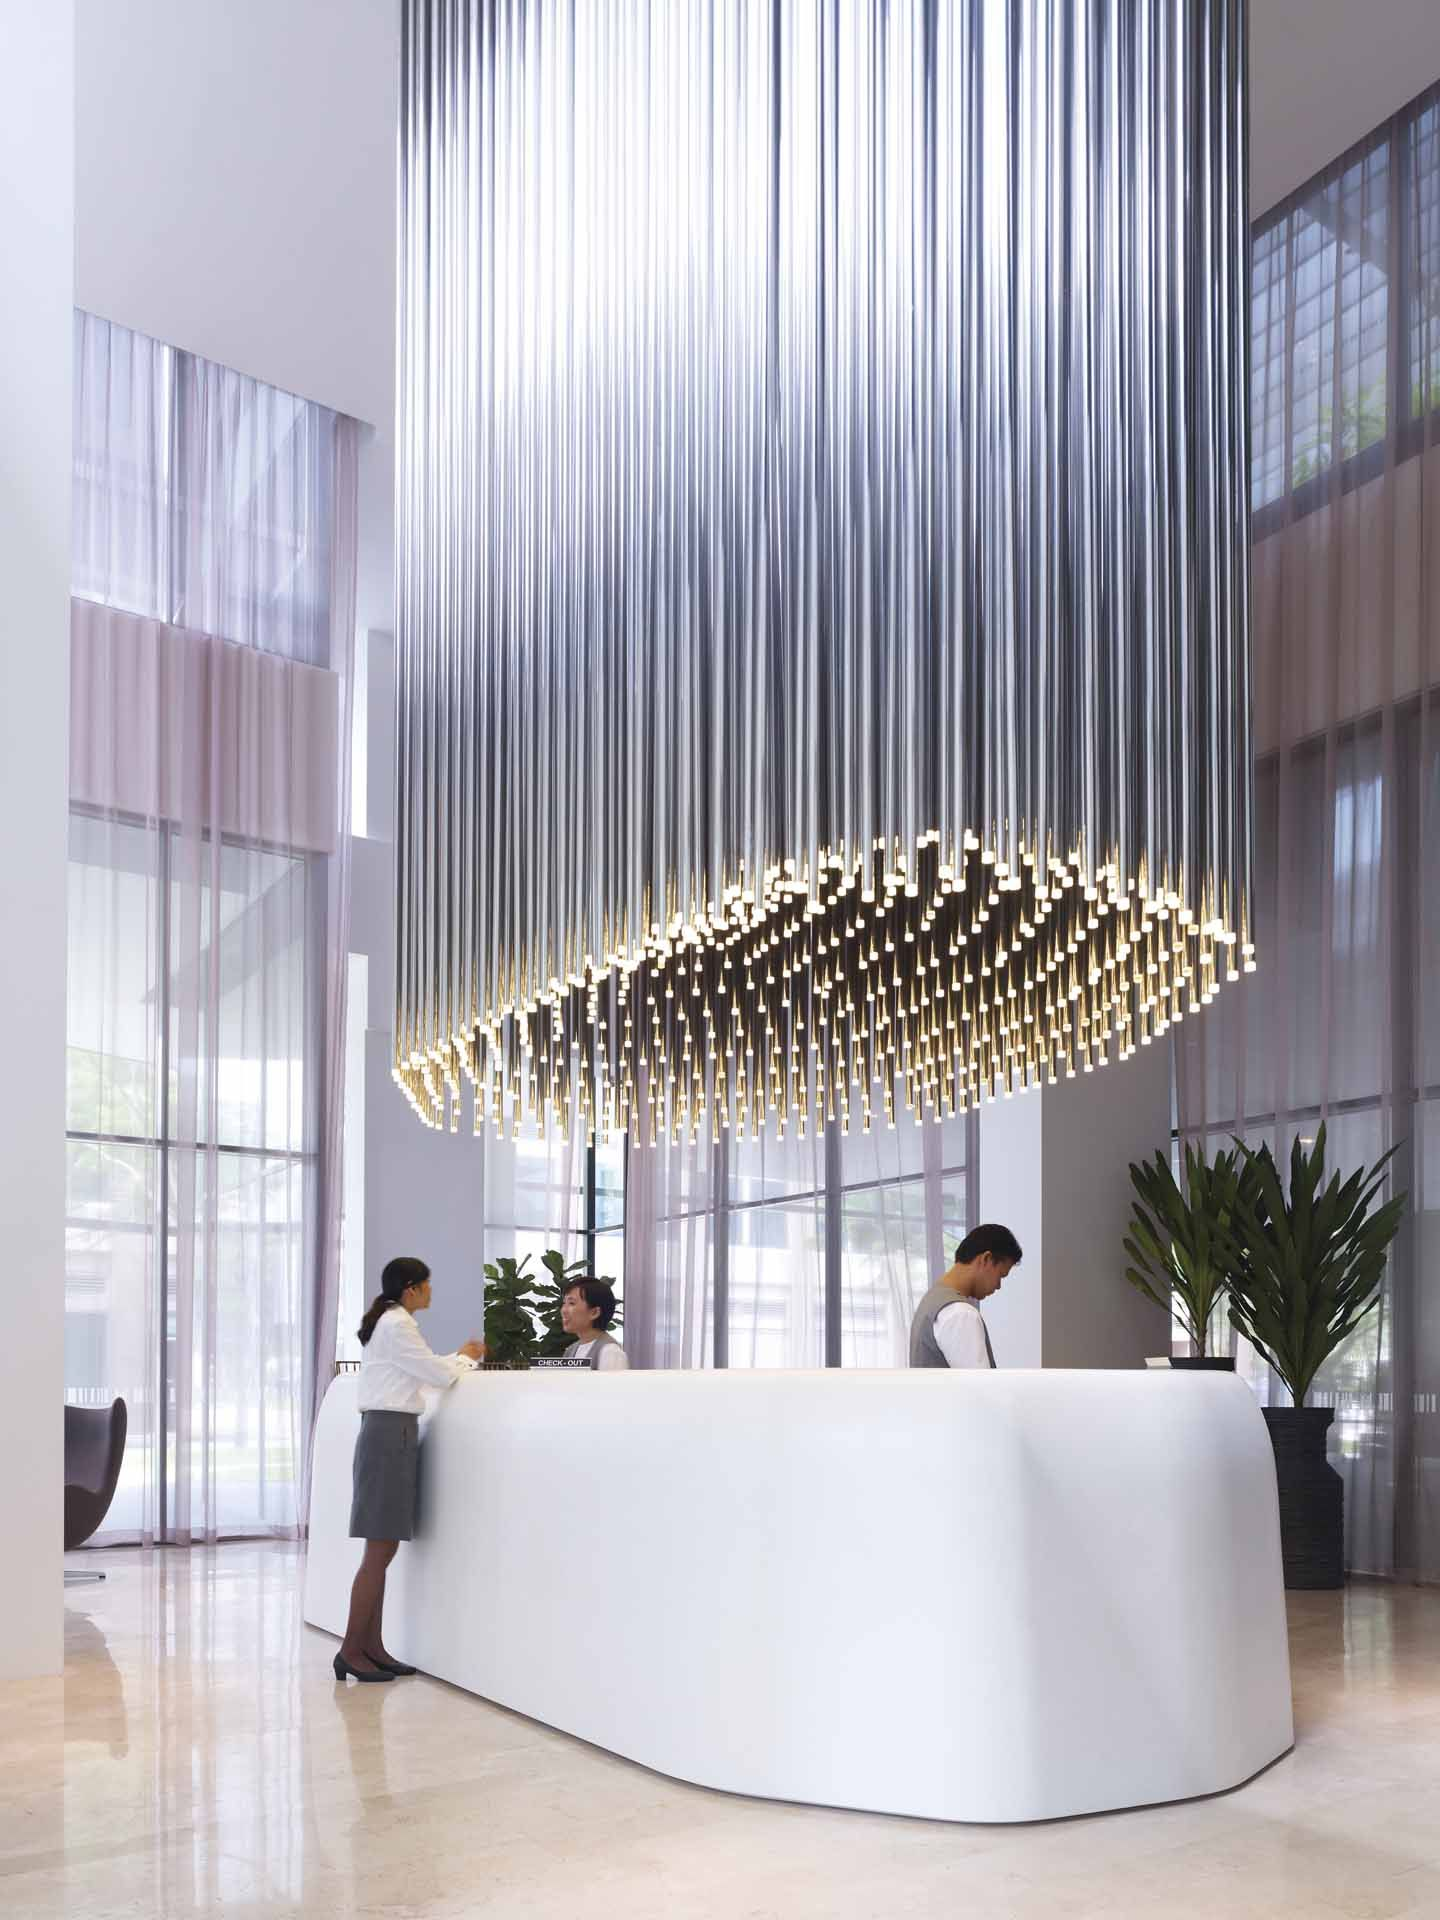 Studio M Hotel reception area in Singapore   The lighting fixture is absolutely stunning.   Find more inspiring lighting designs and solutions for your hospitality projects at Unique Blog http://delightfull.eu/blog/